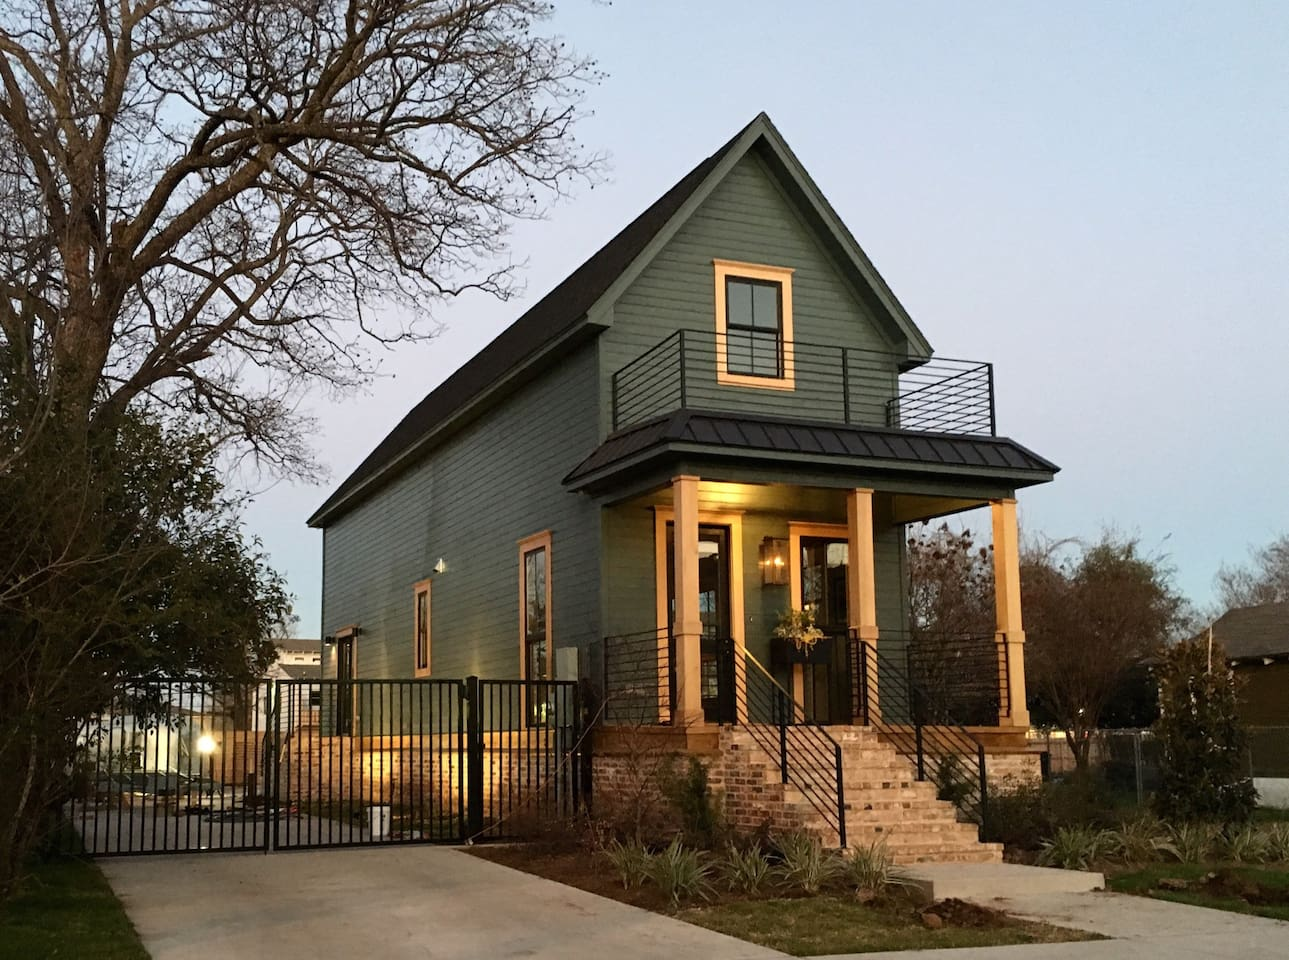 Shotgun Home Shotgun House Houses For Rent In Waco Texas United States